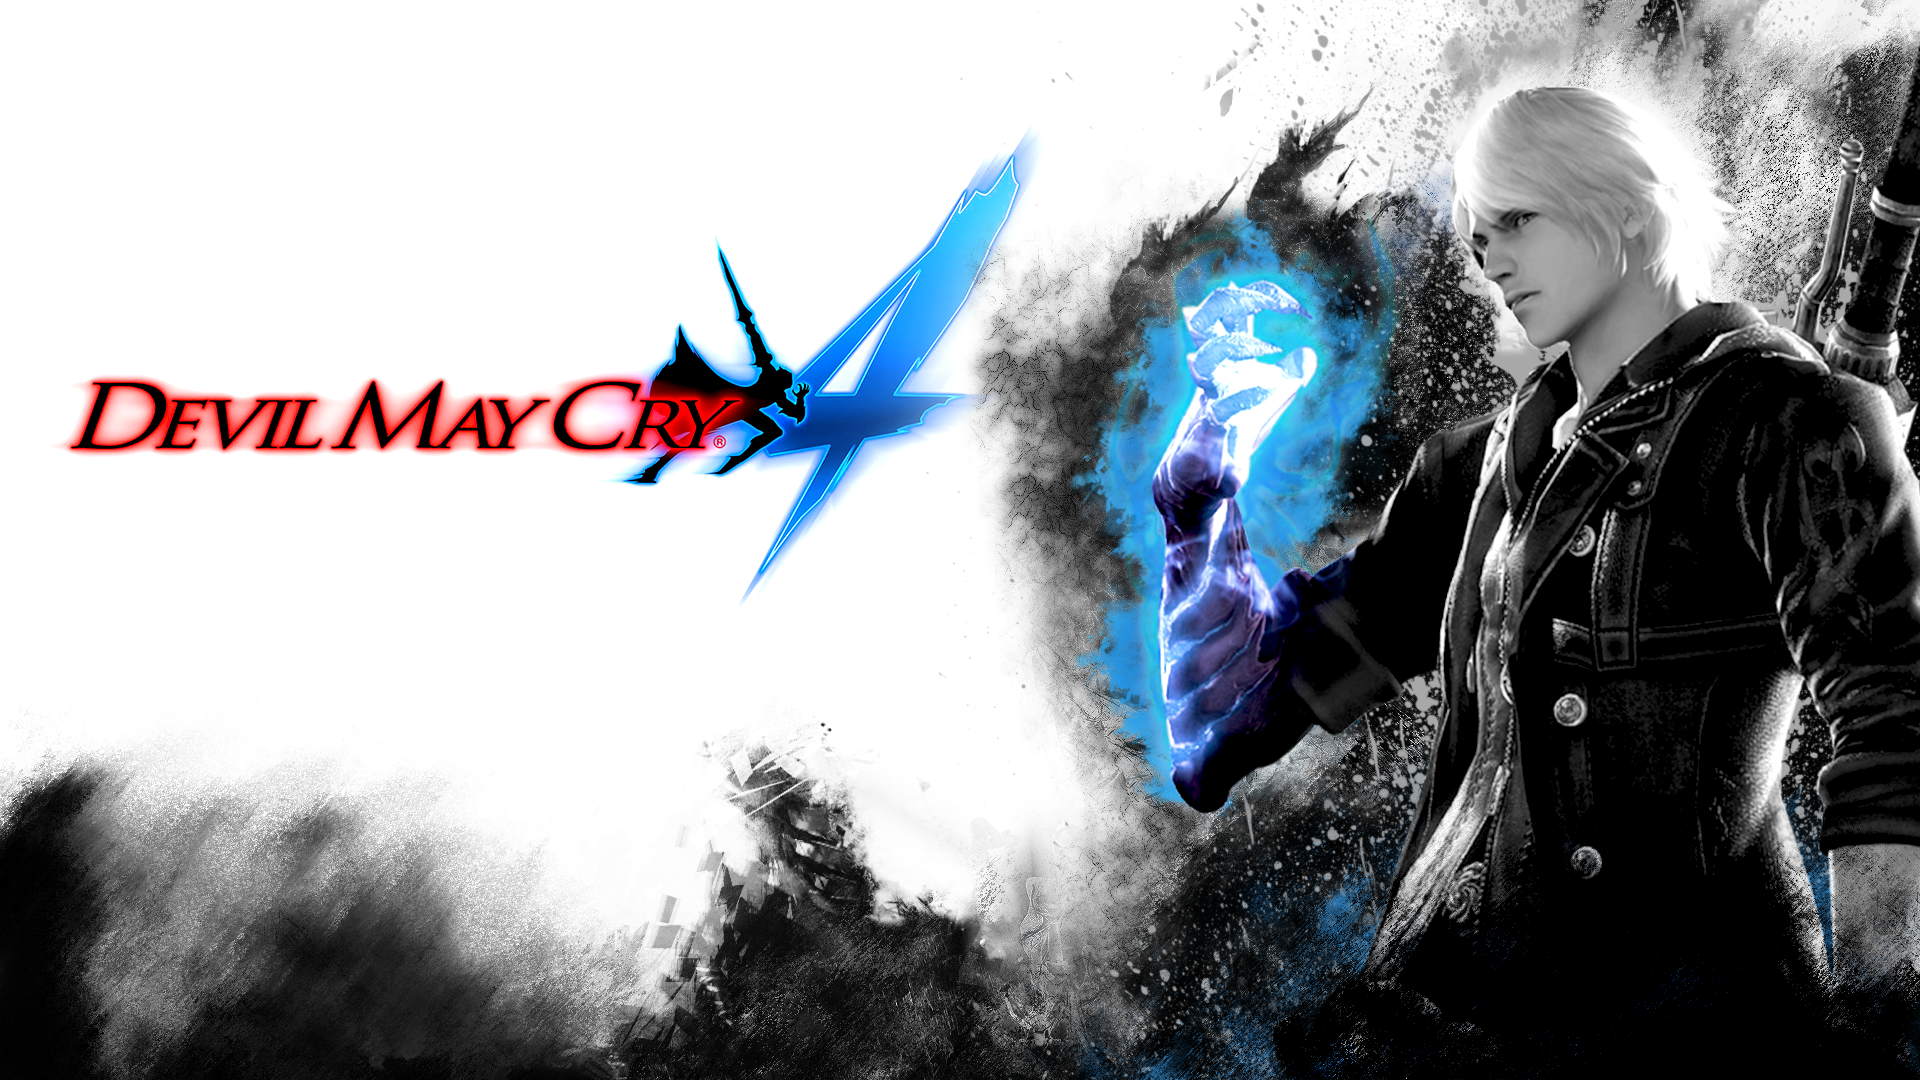 26 Dante (Devil May Cry) HD Wallpapers | Backgrounds - Wallpaper Abyss